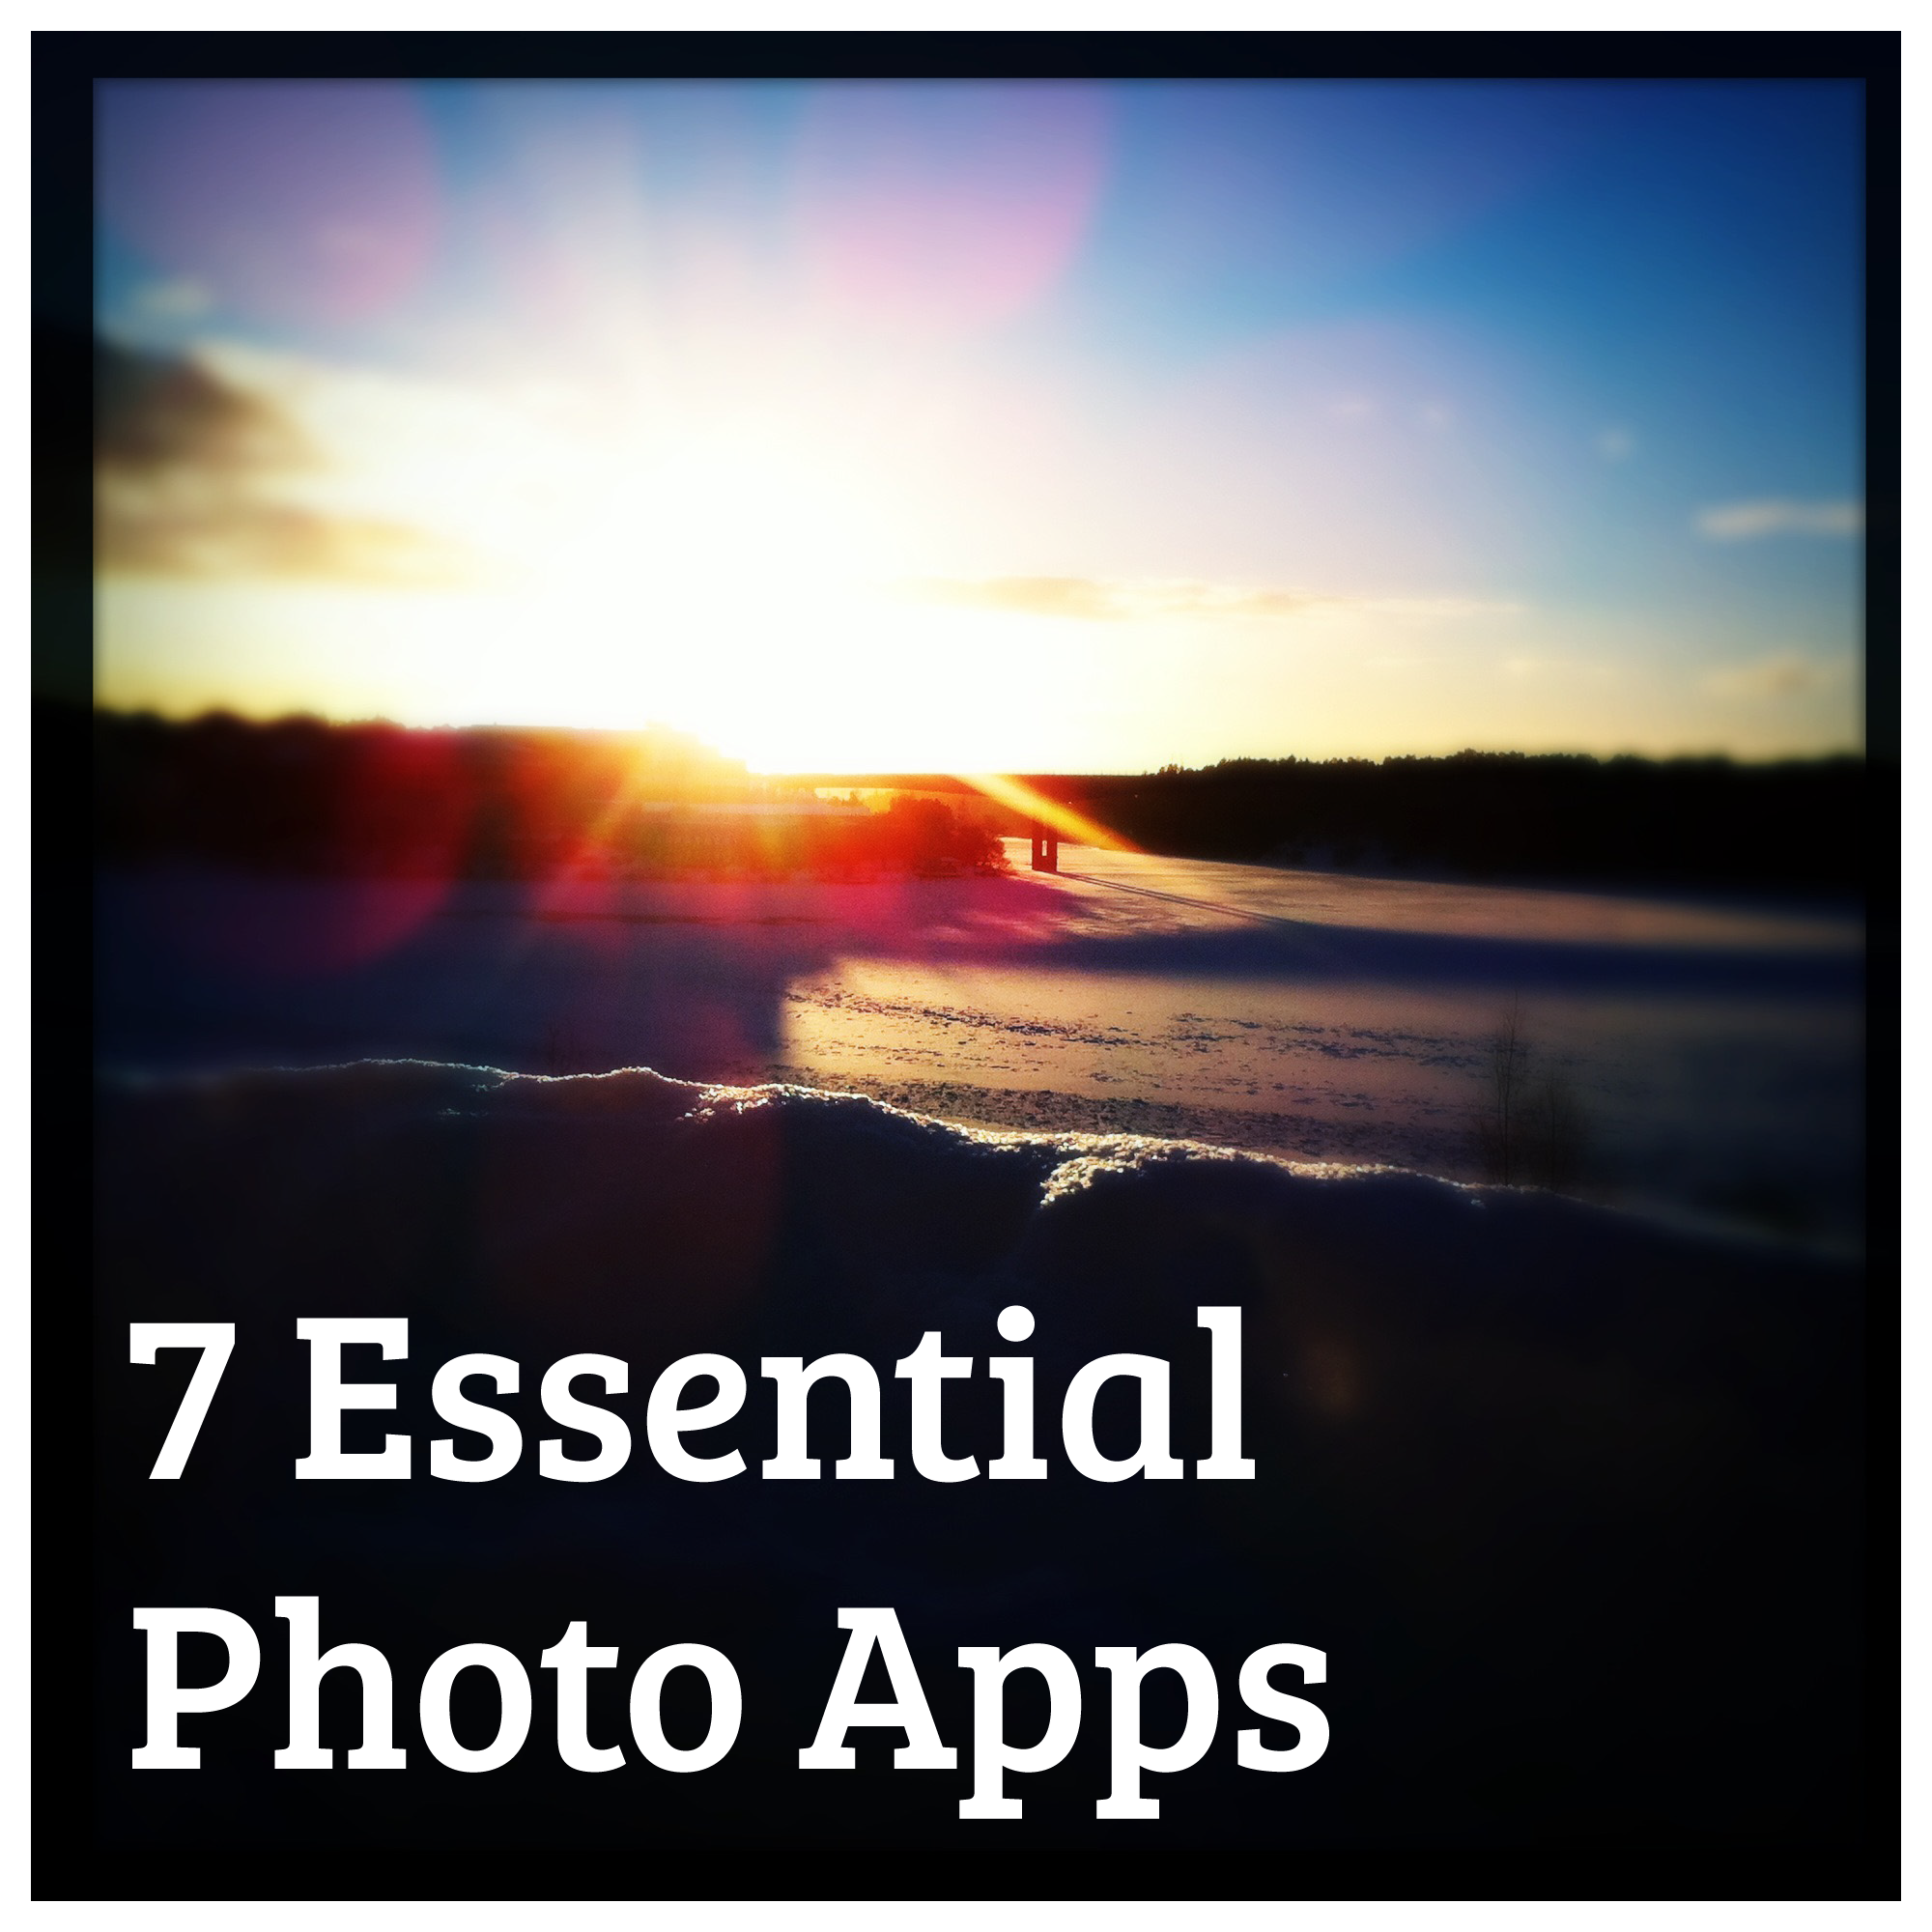 Essential Photo Apps